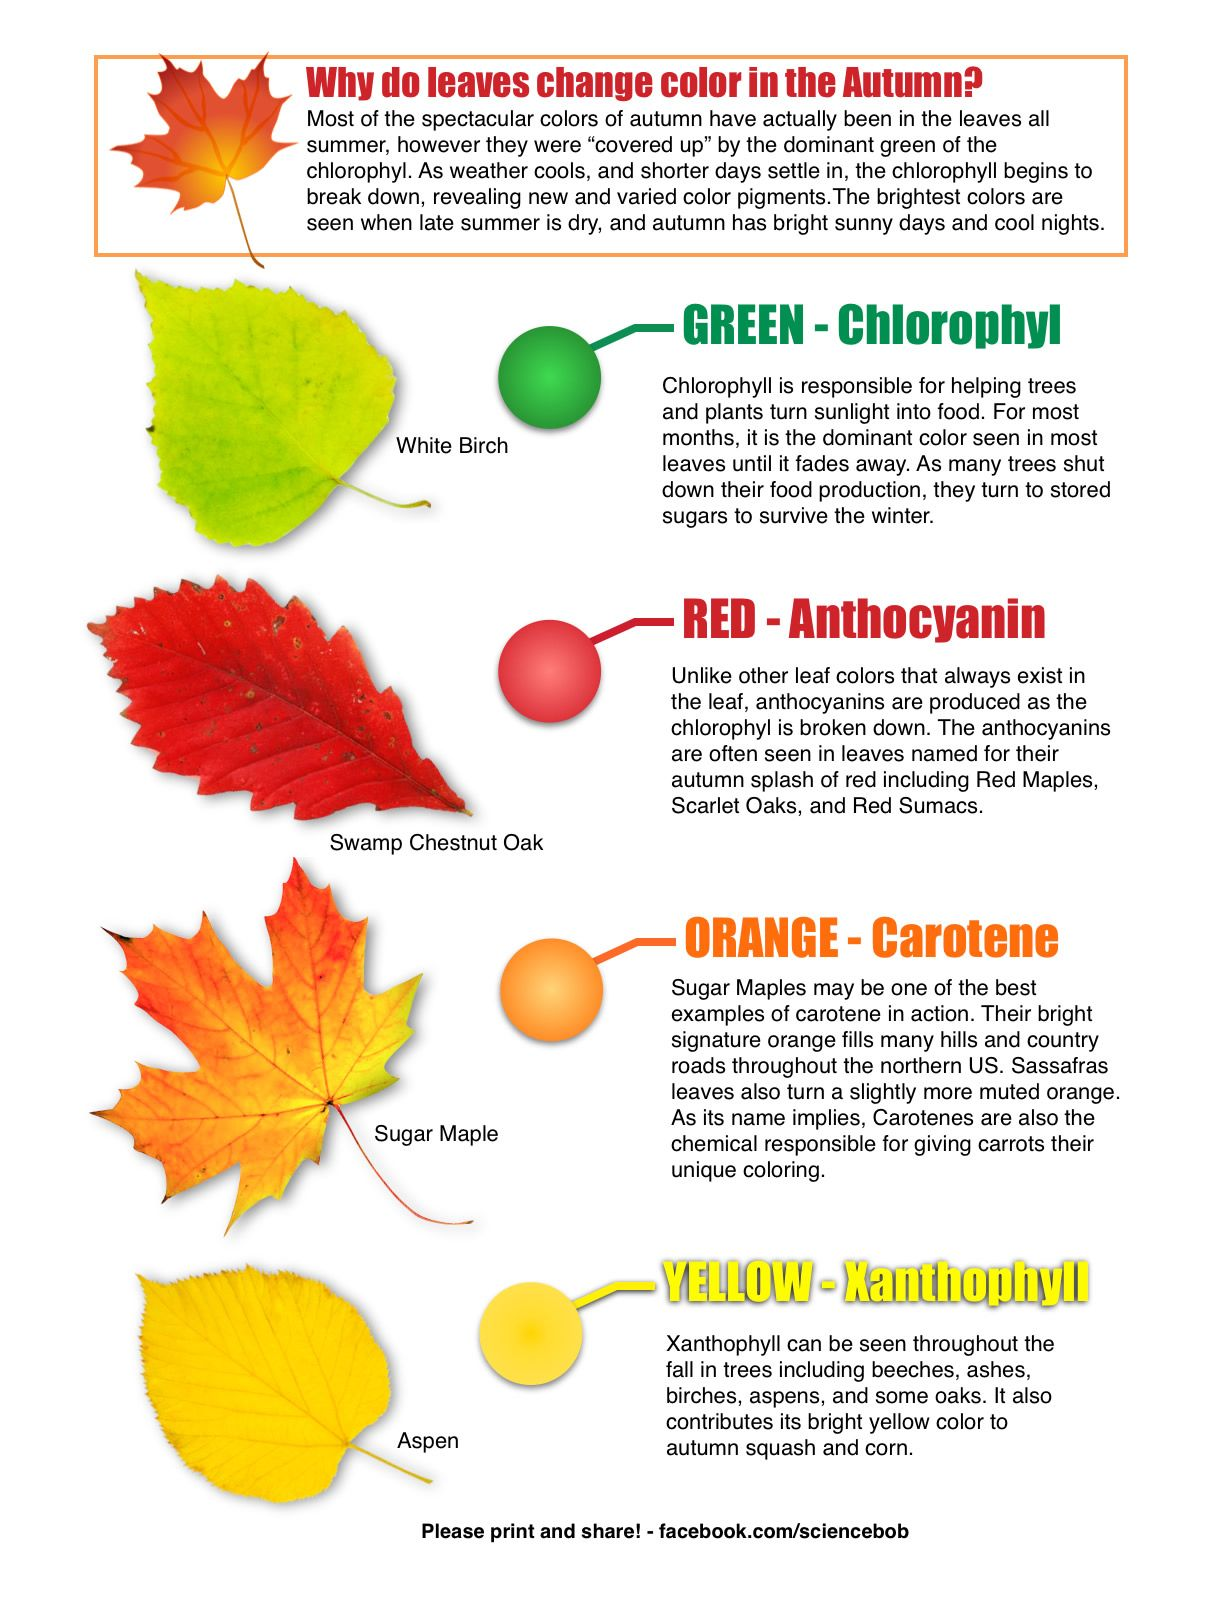 Translations Into Italian: Why Do Leaves Change Color In The Autumn? From Science Bob